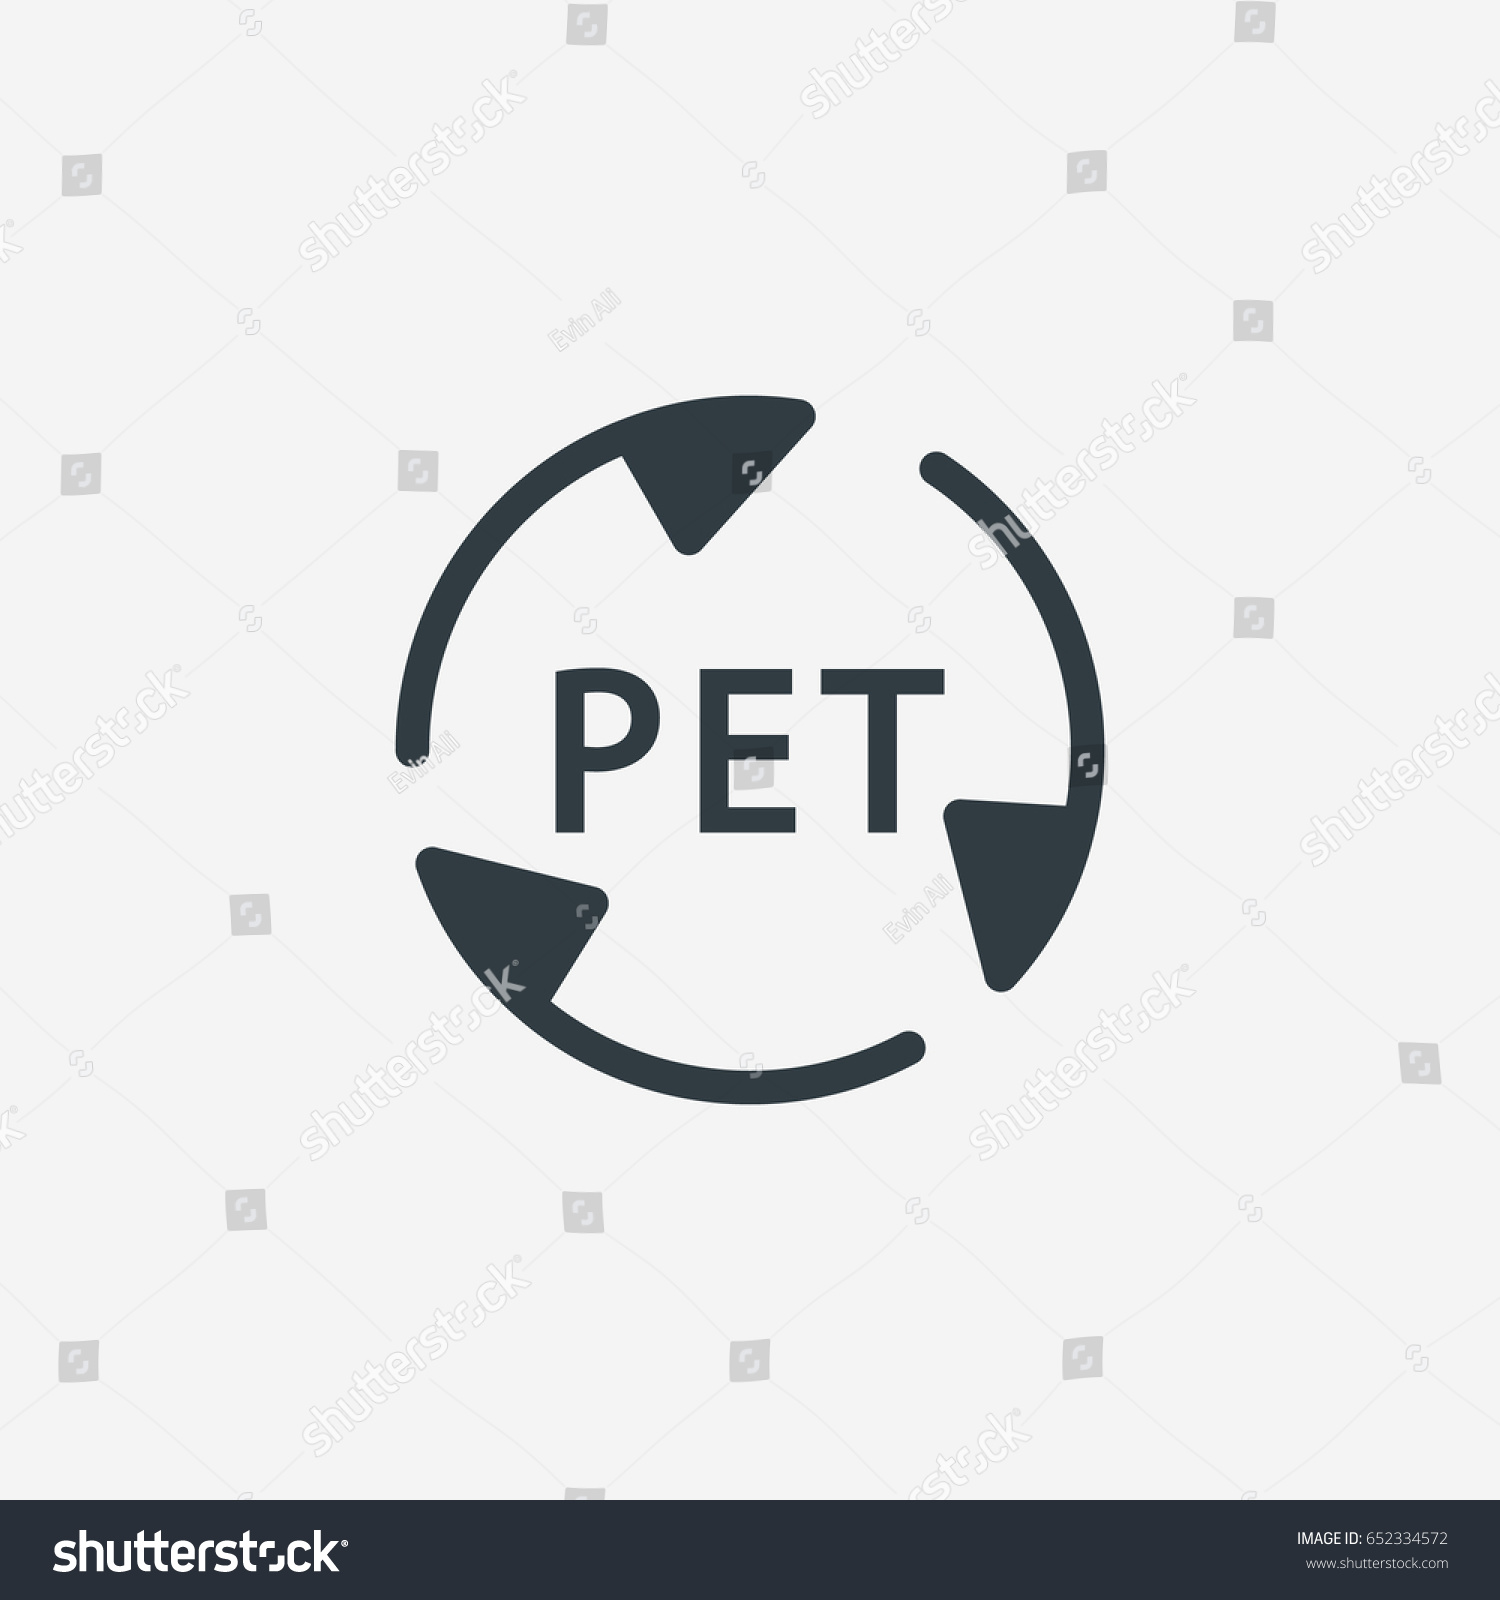 Plastic Recycle Symbol Pet Plastic Recycling Stock Vector Royalty